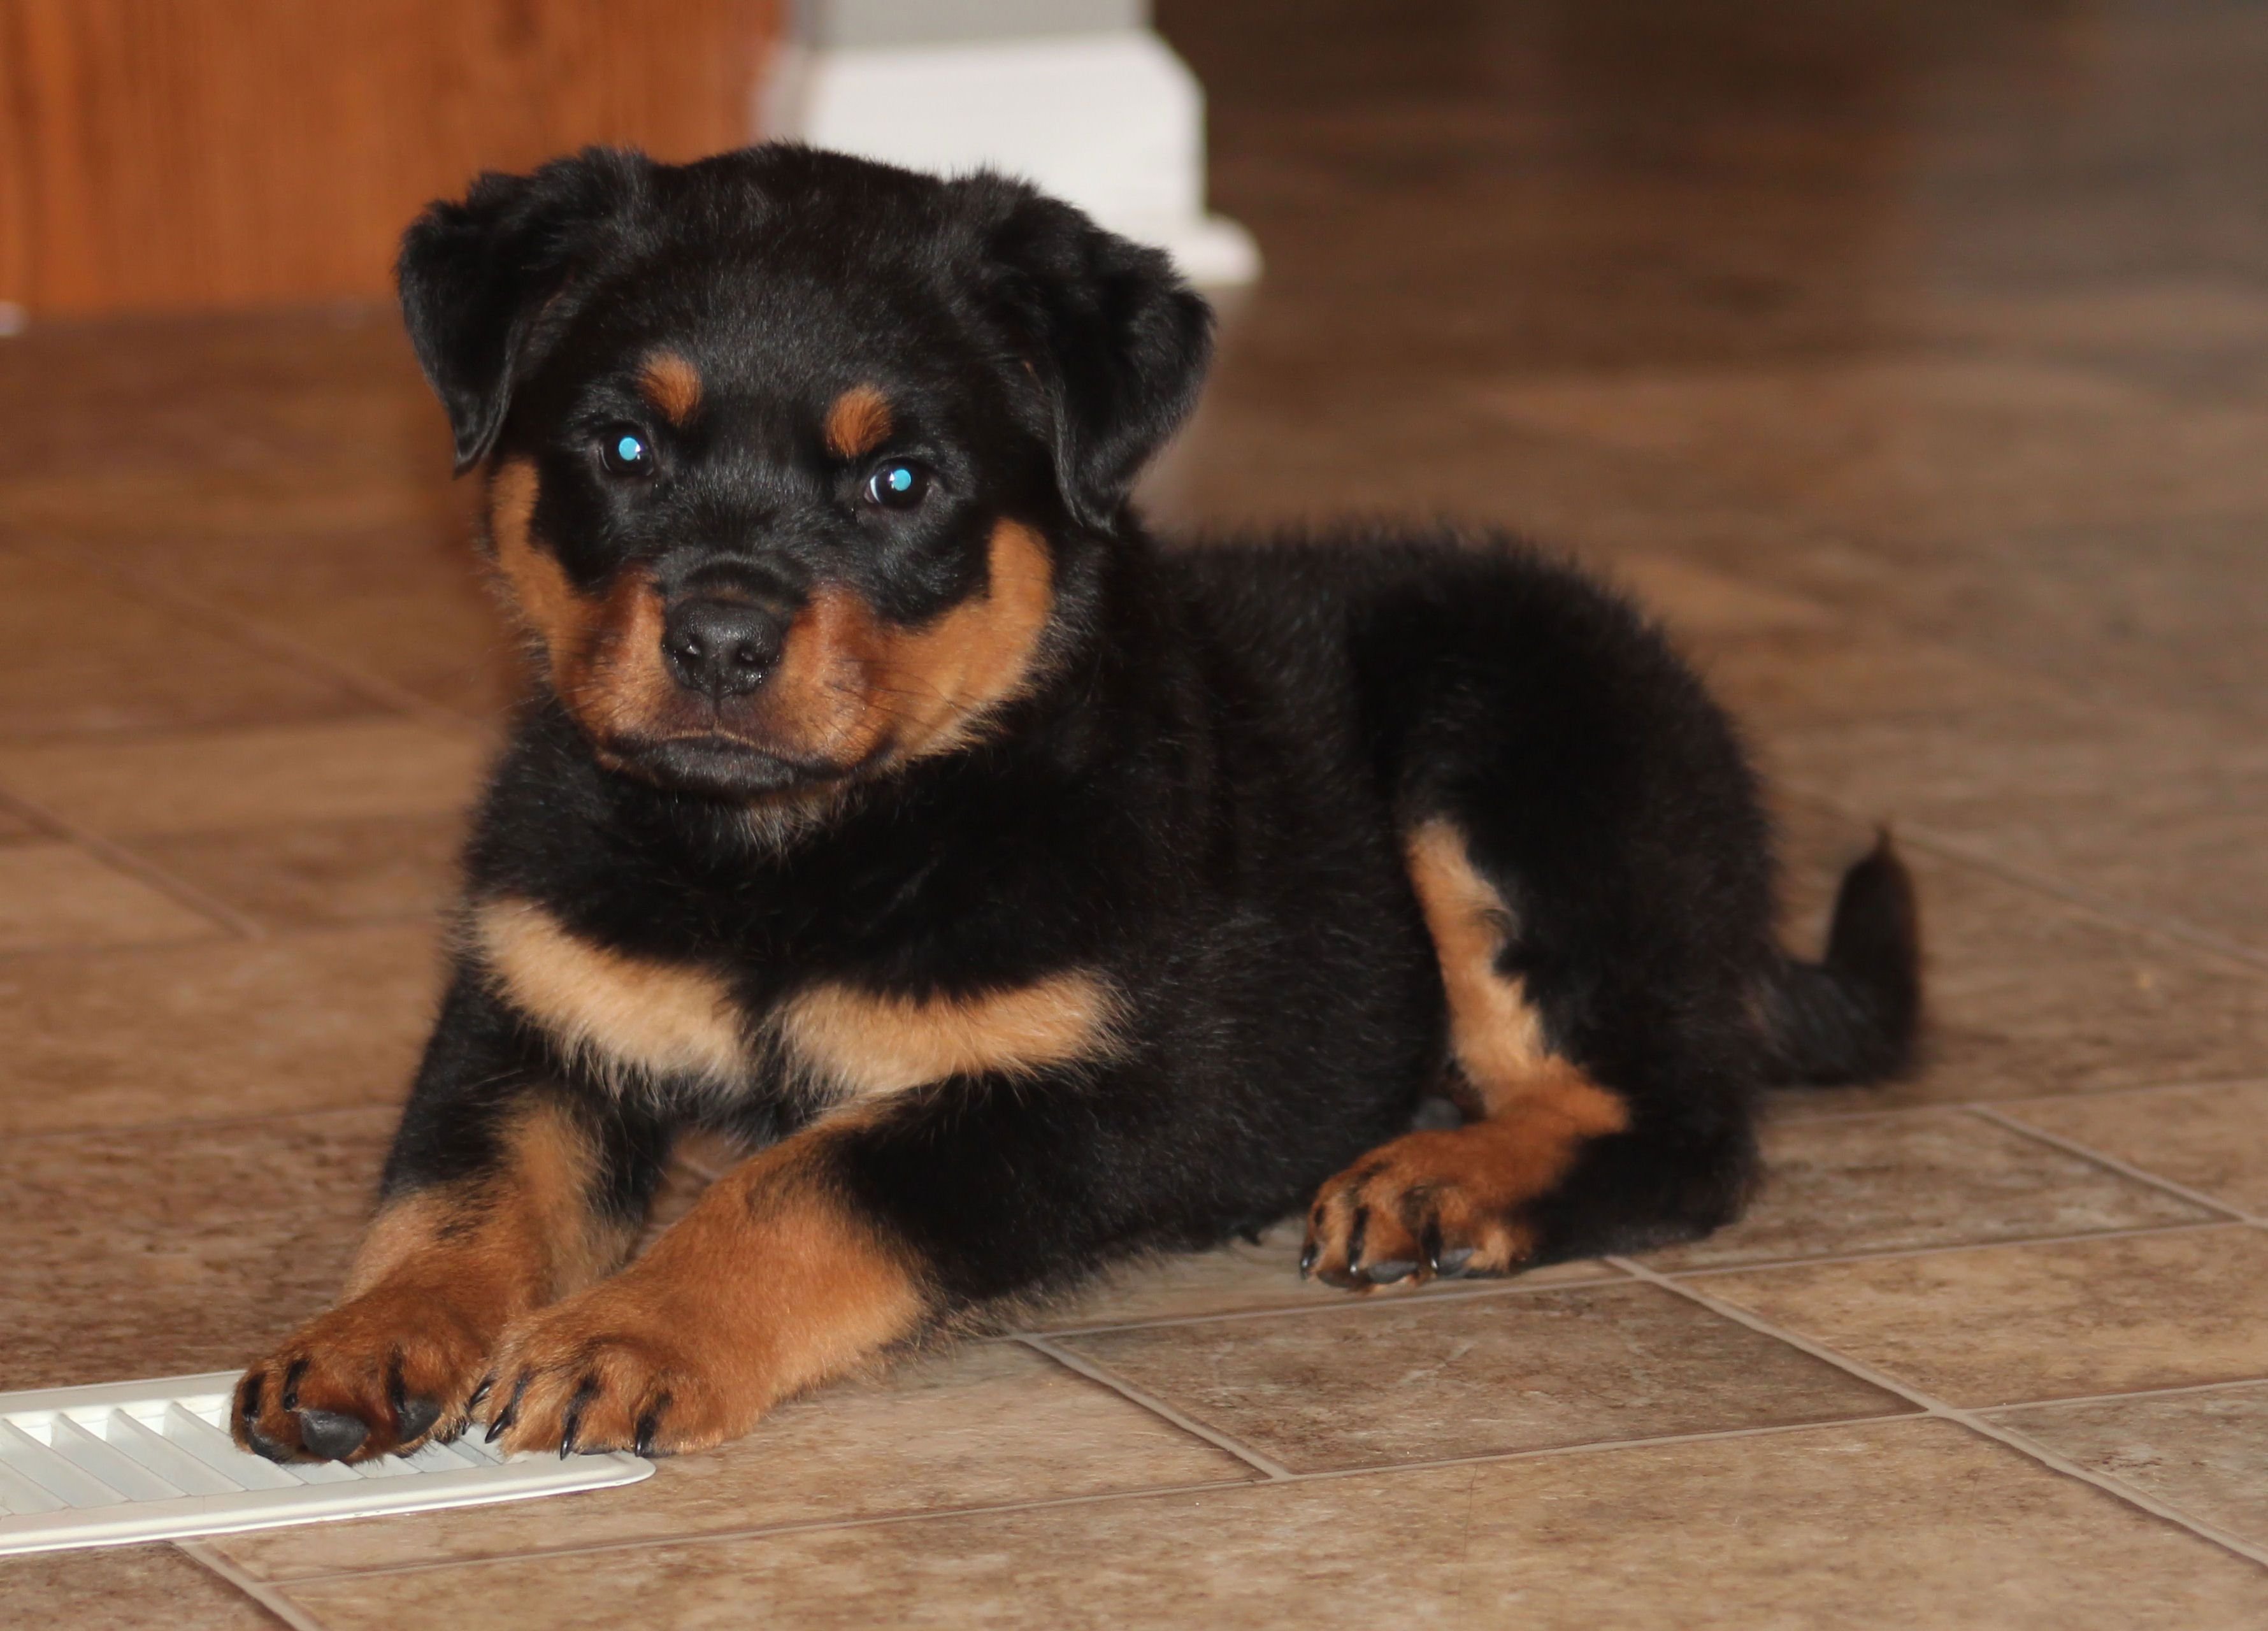 Adorable Rottweiler Puppies For More Cute Puppies Check Out Our